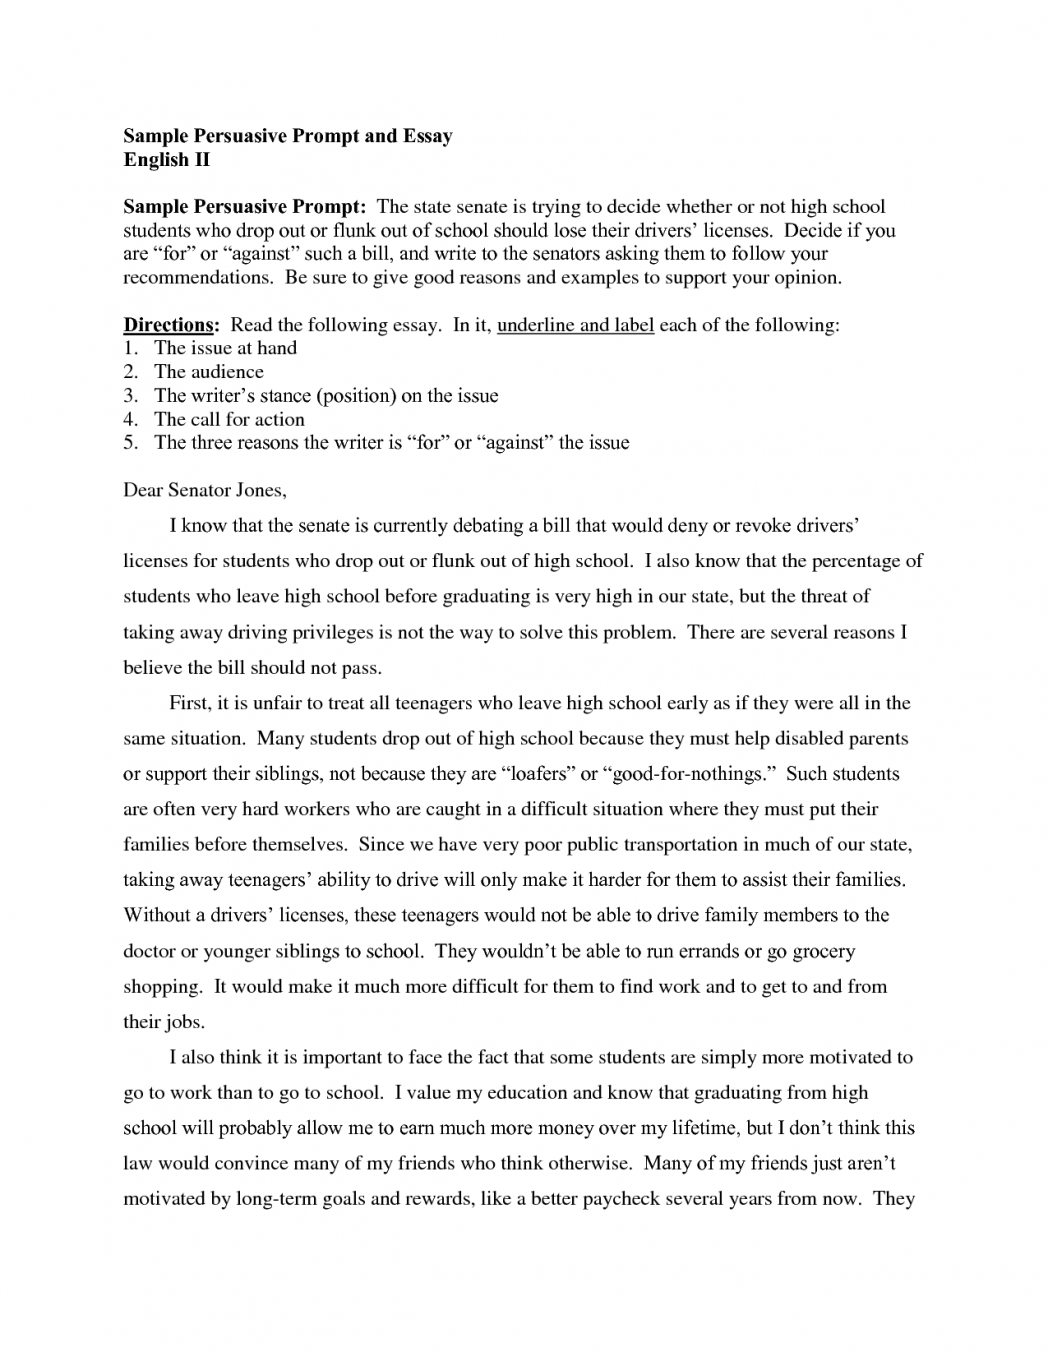 Process Essay Example Paper Persuasive Essay Samples For High School Goal Blockety Co Essay Papers For Sale also English Essay Story Persuasive Essay Samples For High School Goal Blockety Co  Essay  Examples Of Thesis Statements For Persuasive Essays